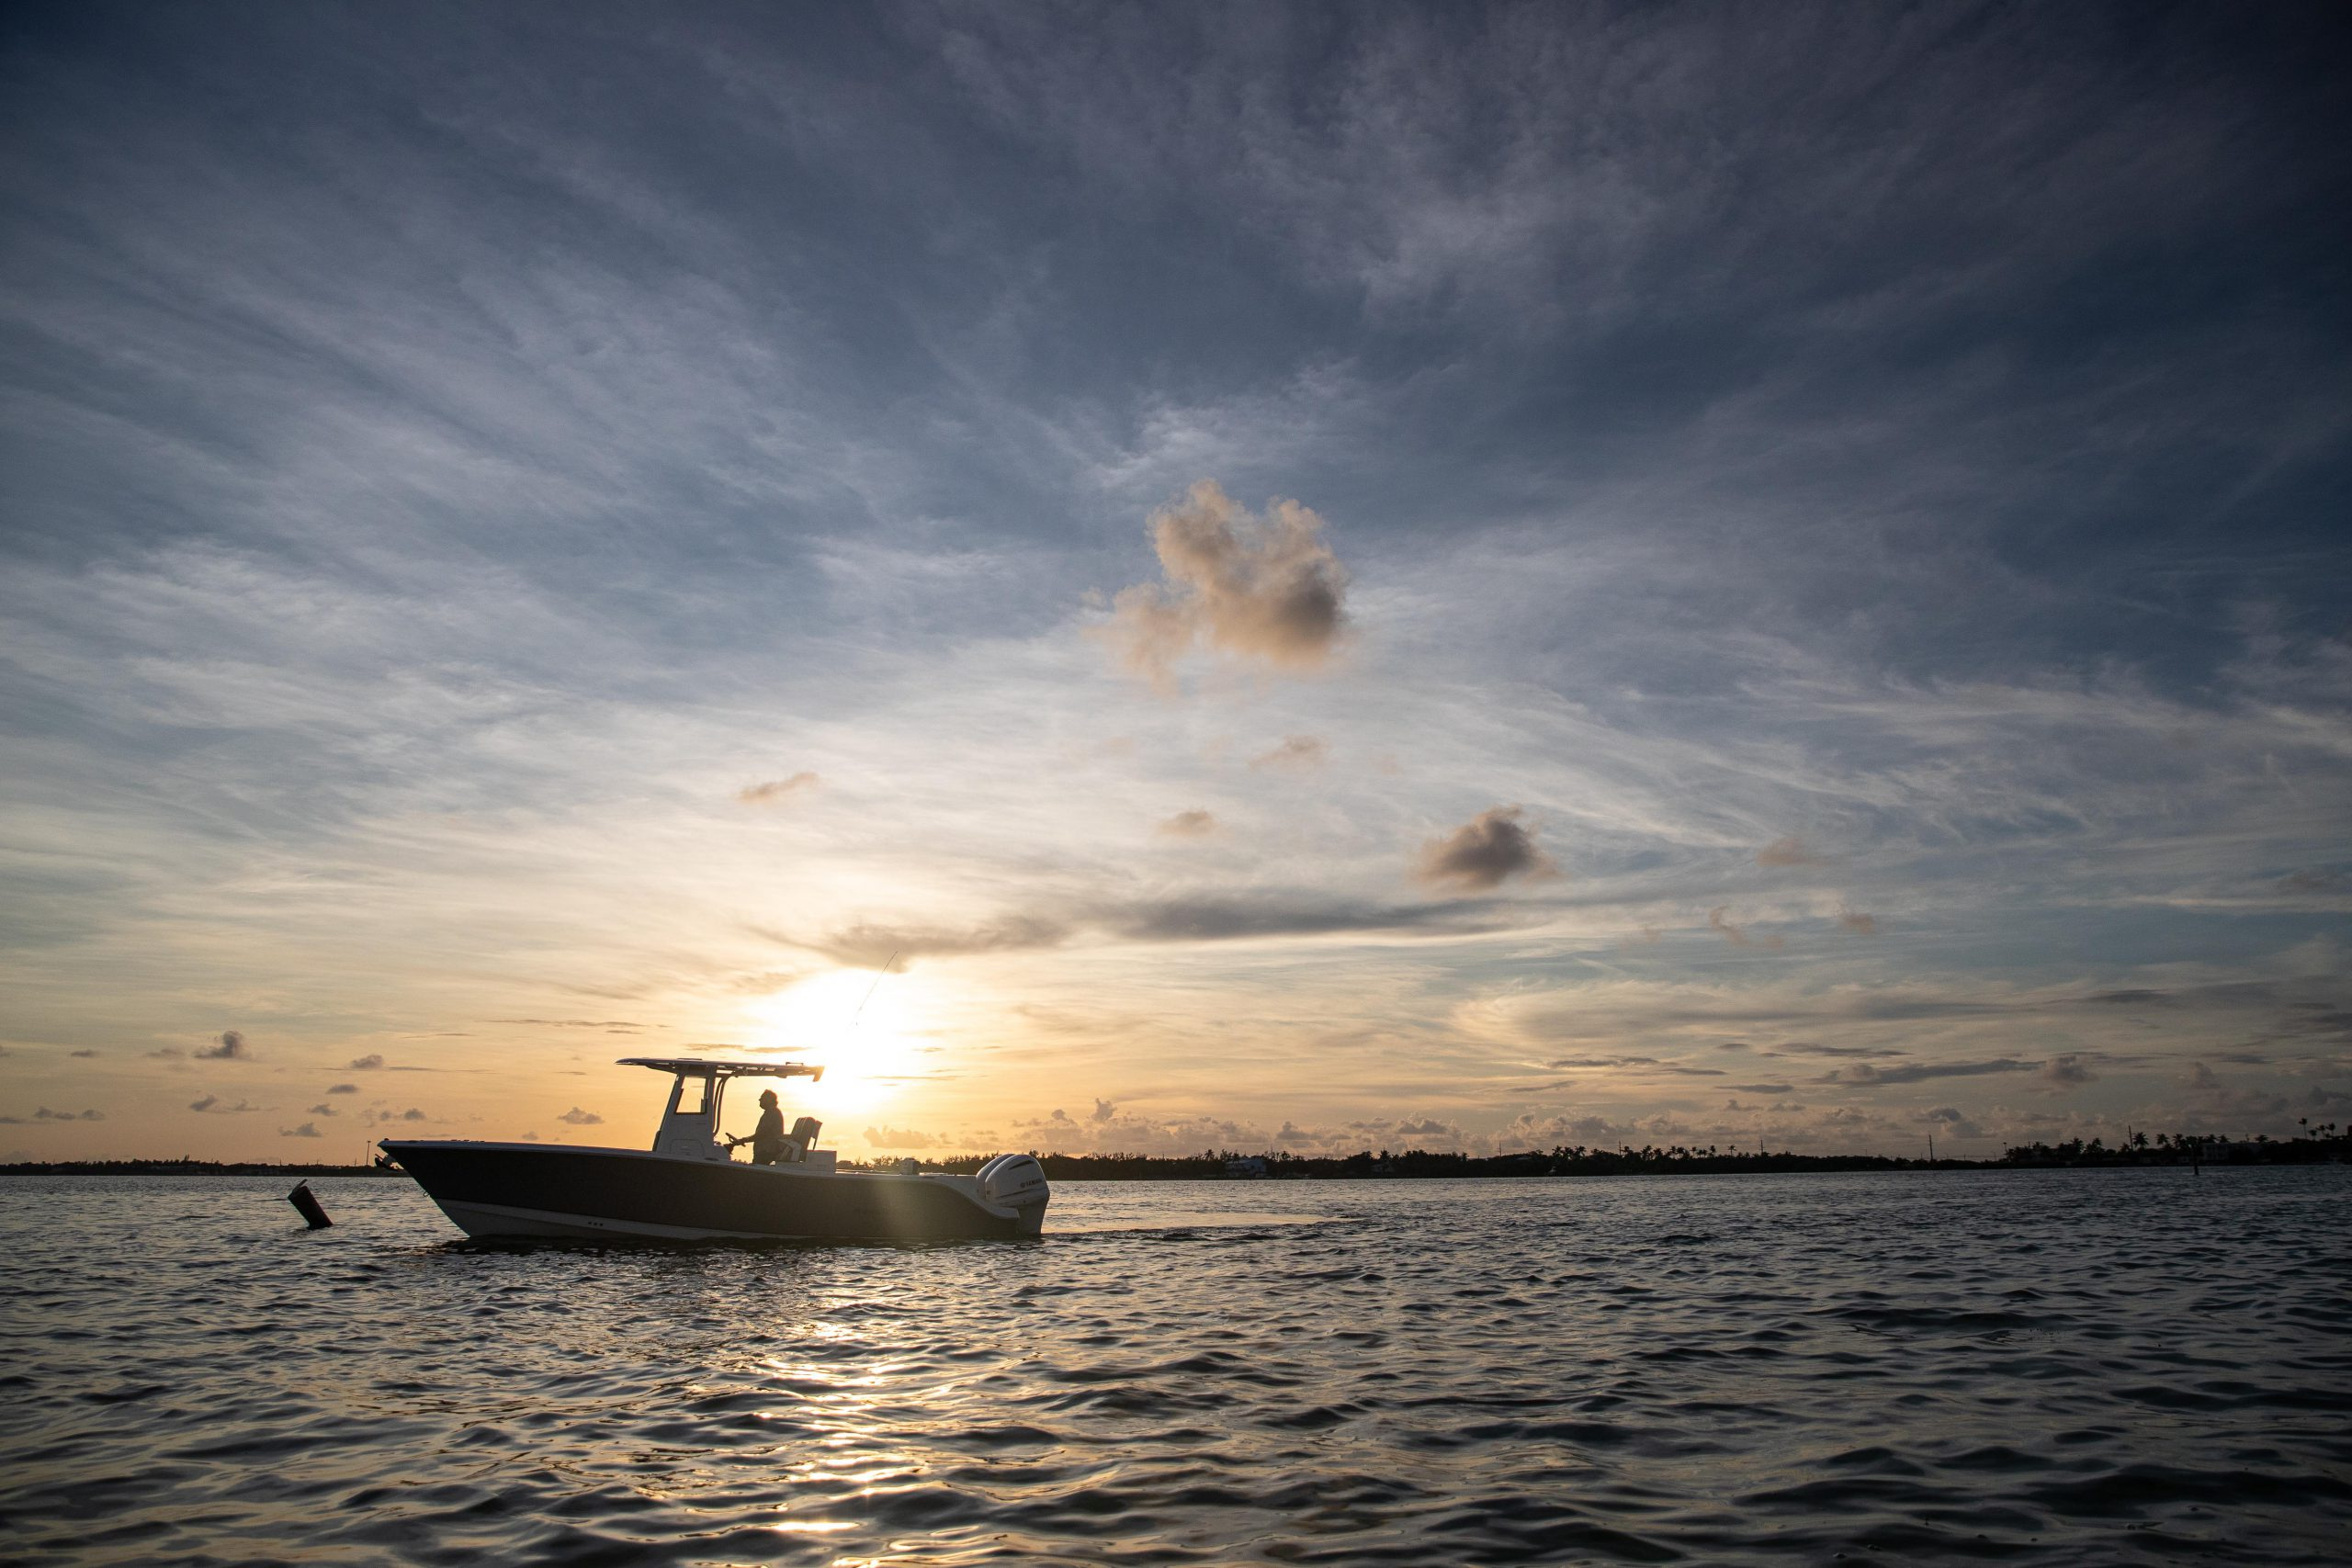 A NauticStar 28XS boat glides across the sunset-lit ocean with clouds stretching above